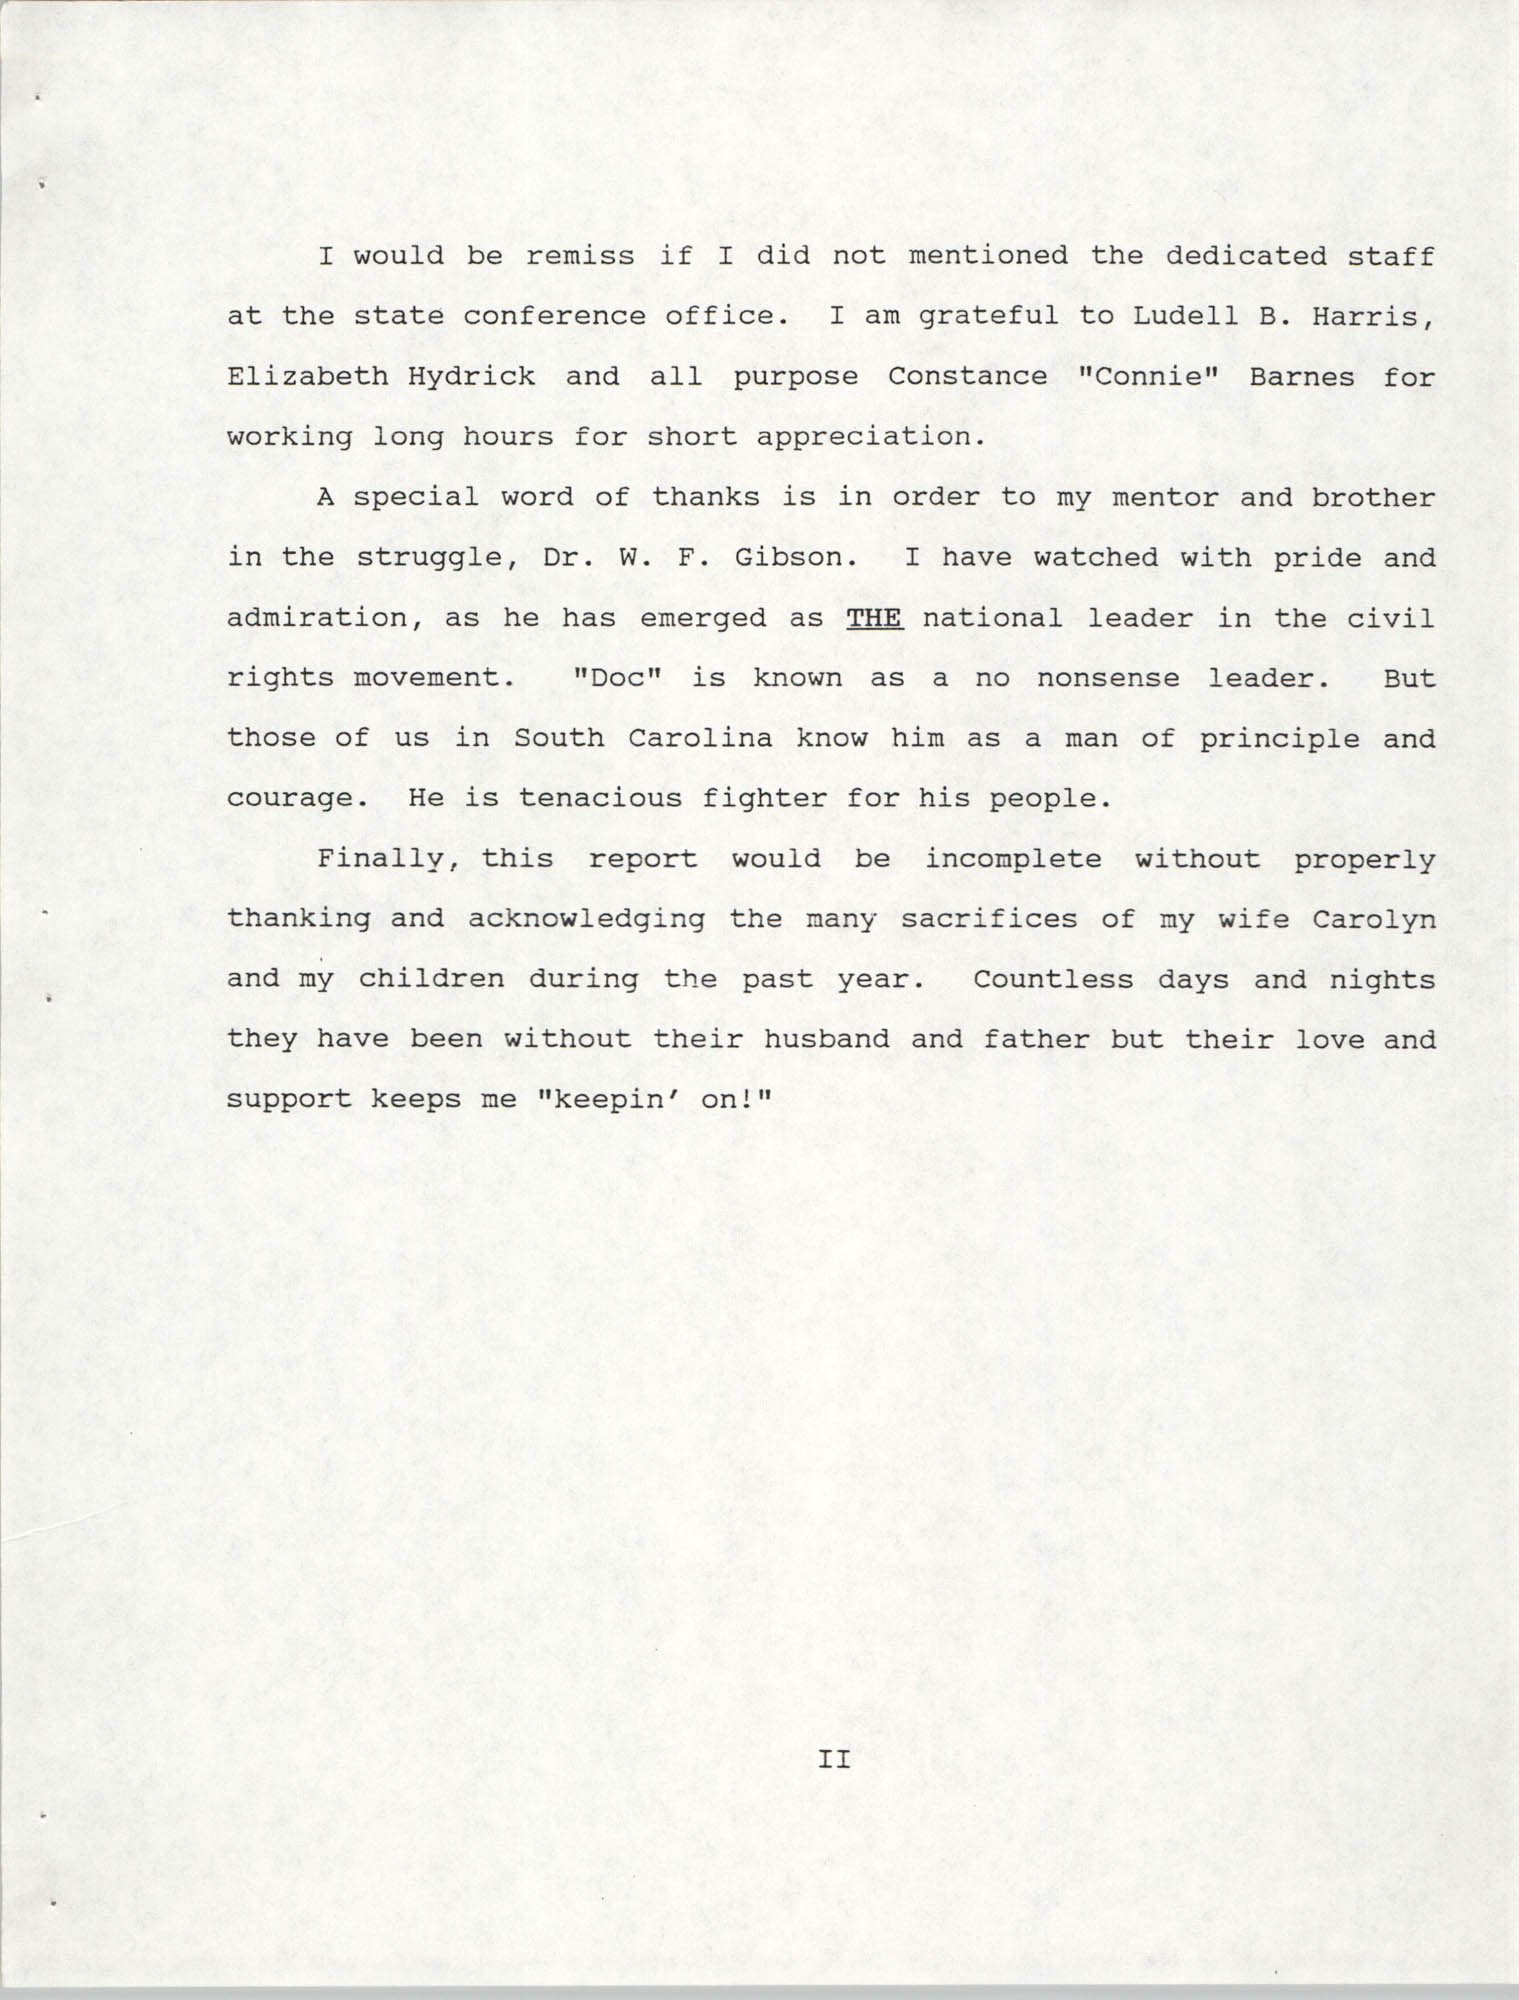 South Carolina Conference of Branches of the NAACP, 1990 Annual Report, Part One, Introduction Page 2